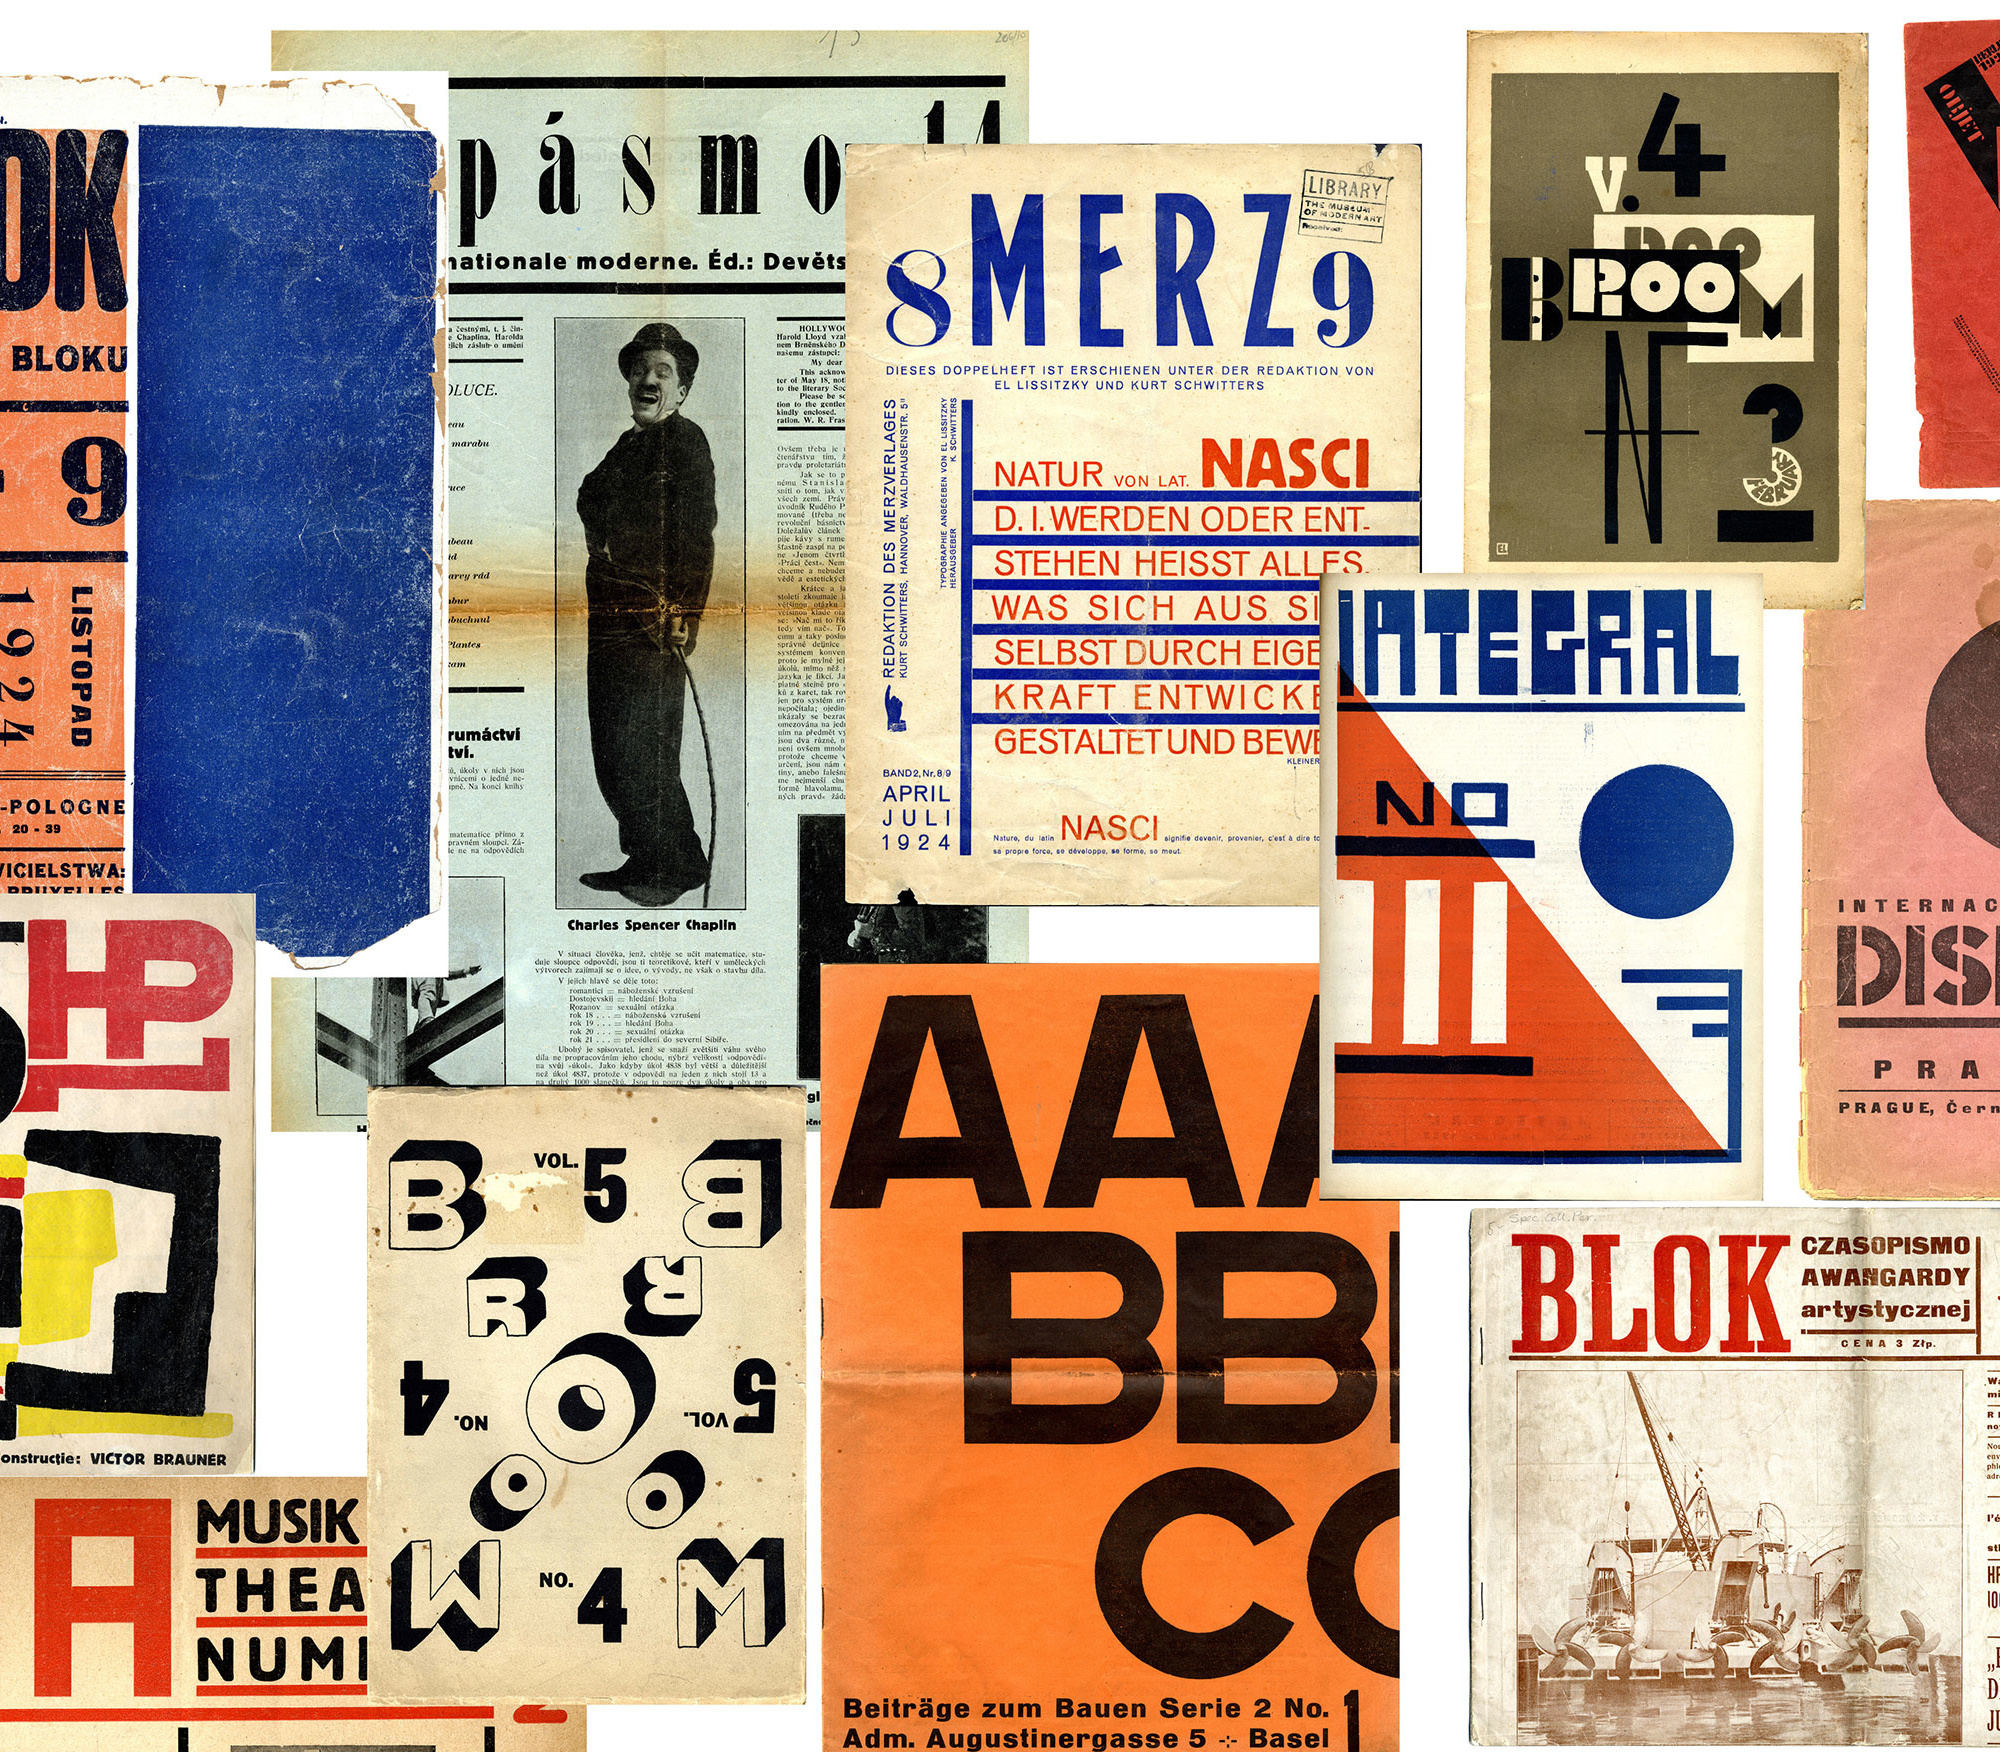 Clockwise, from top left: Blok (Warsaw, 1924); Pasmo (Brno, 1925); Merz (Hannover, 1924); Broom (Berlin, 1923); Veshch/Gegenstand/Objet (Berlin, 1922); Integral (Bucharest, 1925); Disk (Prague, 1923); Blok (Warsaw, 1924); ABC: Beiträge zum Bauen (Basel, 1926); Broom (Berlin, 1923); MA (Vienna, 1924); 75HP (Bucharest, 1924). The Museum of Modern Art Library